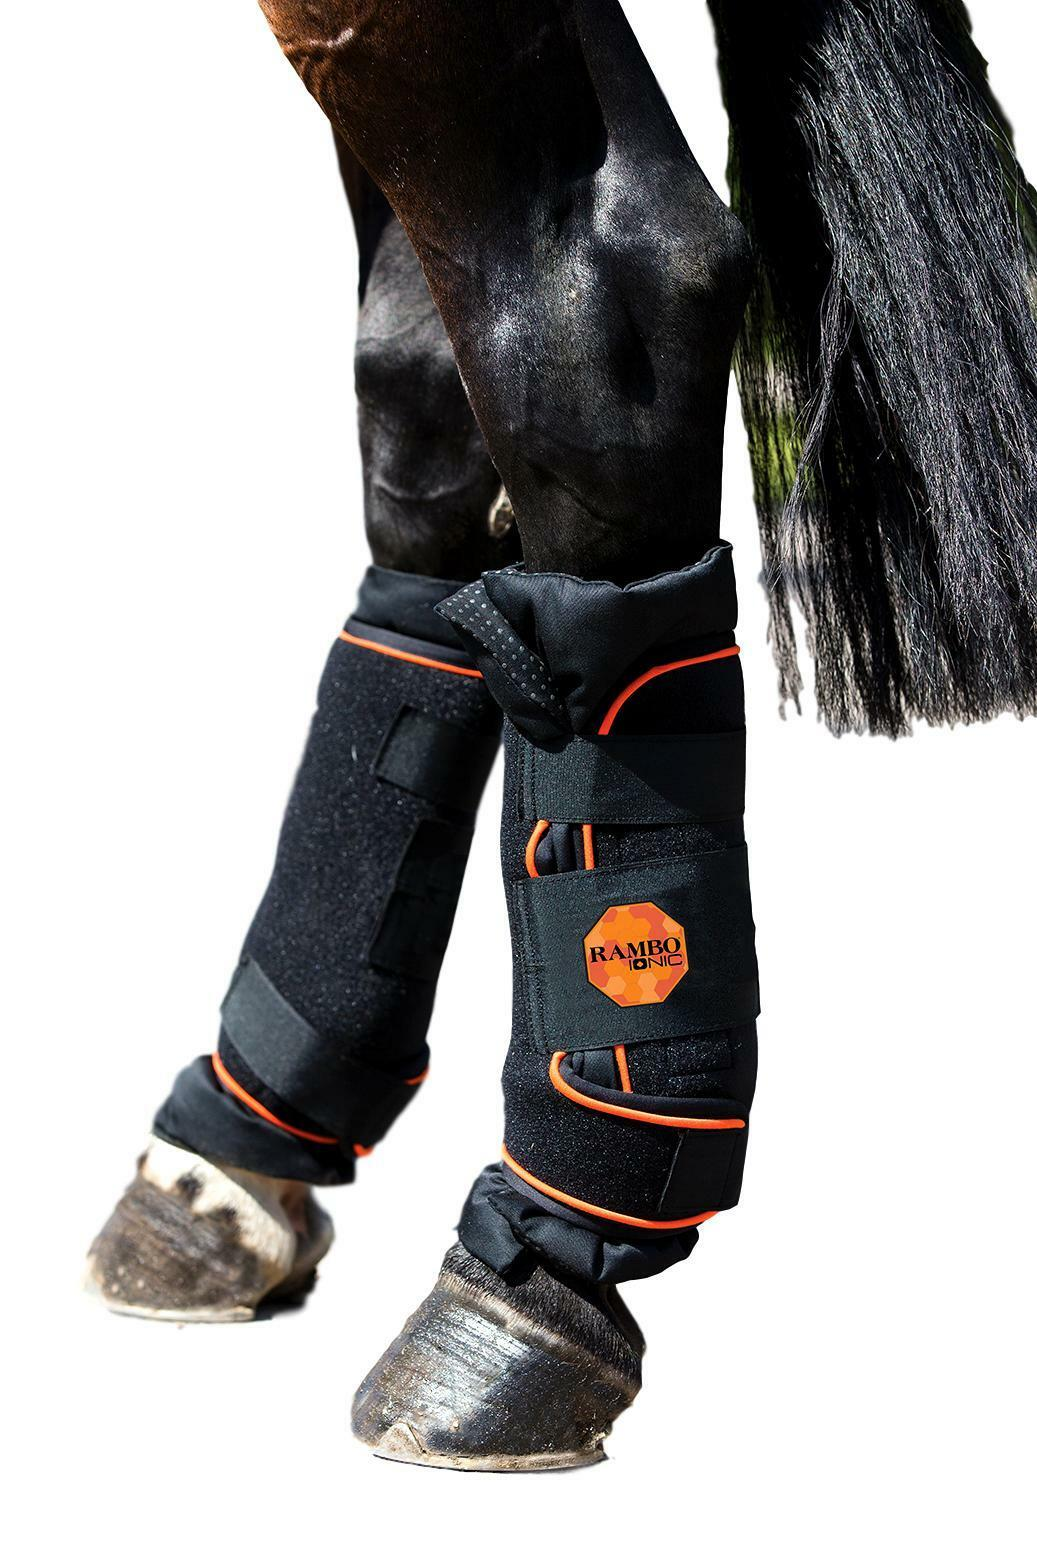 Horseware Rambo Ionic  Stable Boots Promotes Circulation Sold as a Pair  sales online